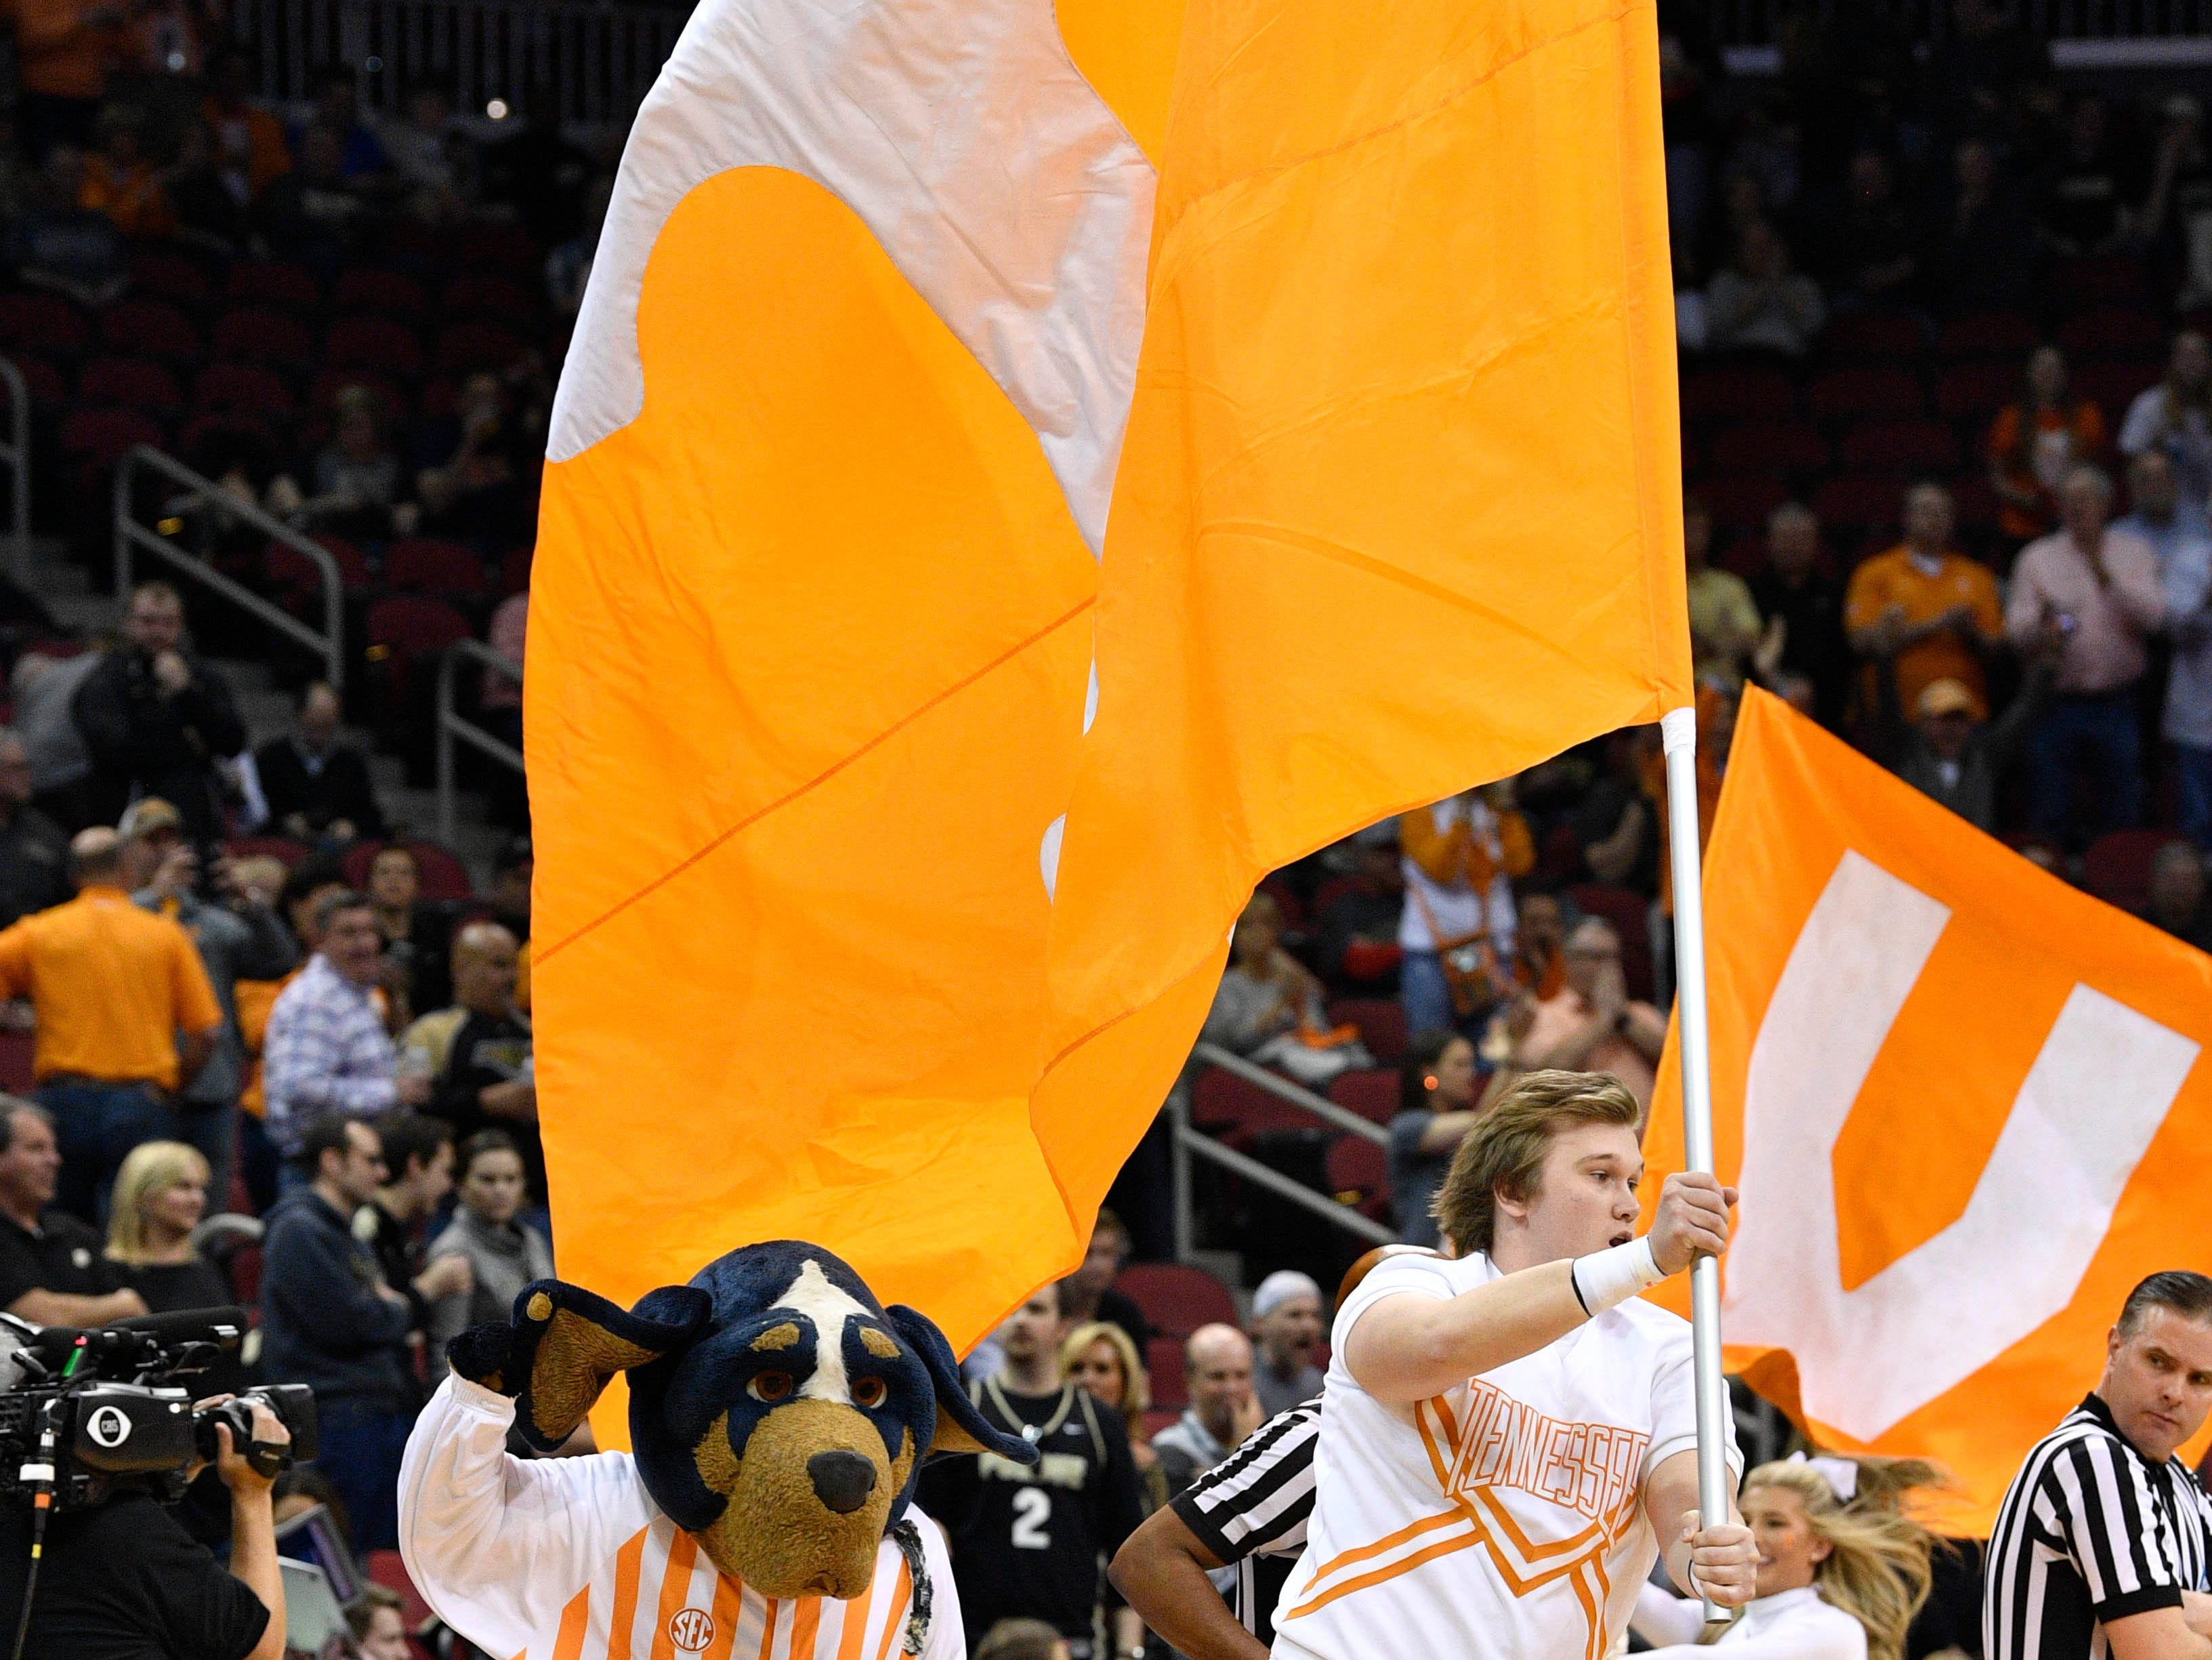 Mar 28, 2019; Louisville, KY, United States; Tennessee Volunteers cheerleaders and mascot perform before the game against the Purdue Boilermakers in the semifinals of the south regional of the 2019 NCAA Tournament at KFC Yum Center. Mandatory Credit: Jamie Rhodes-USA TODAY Sports